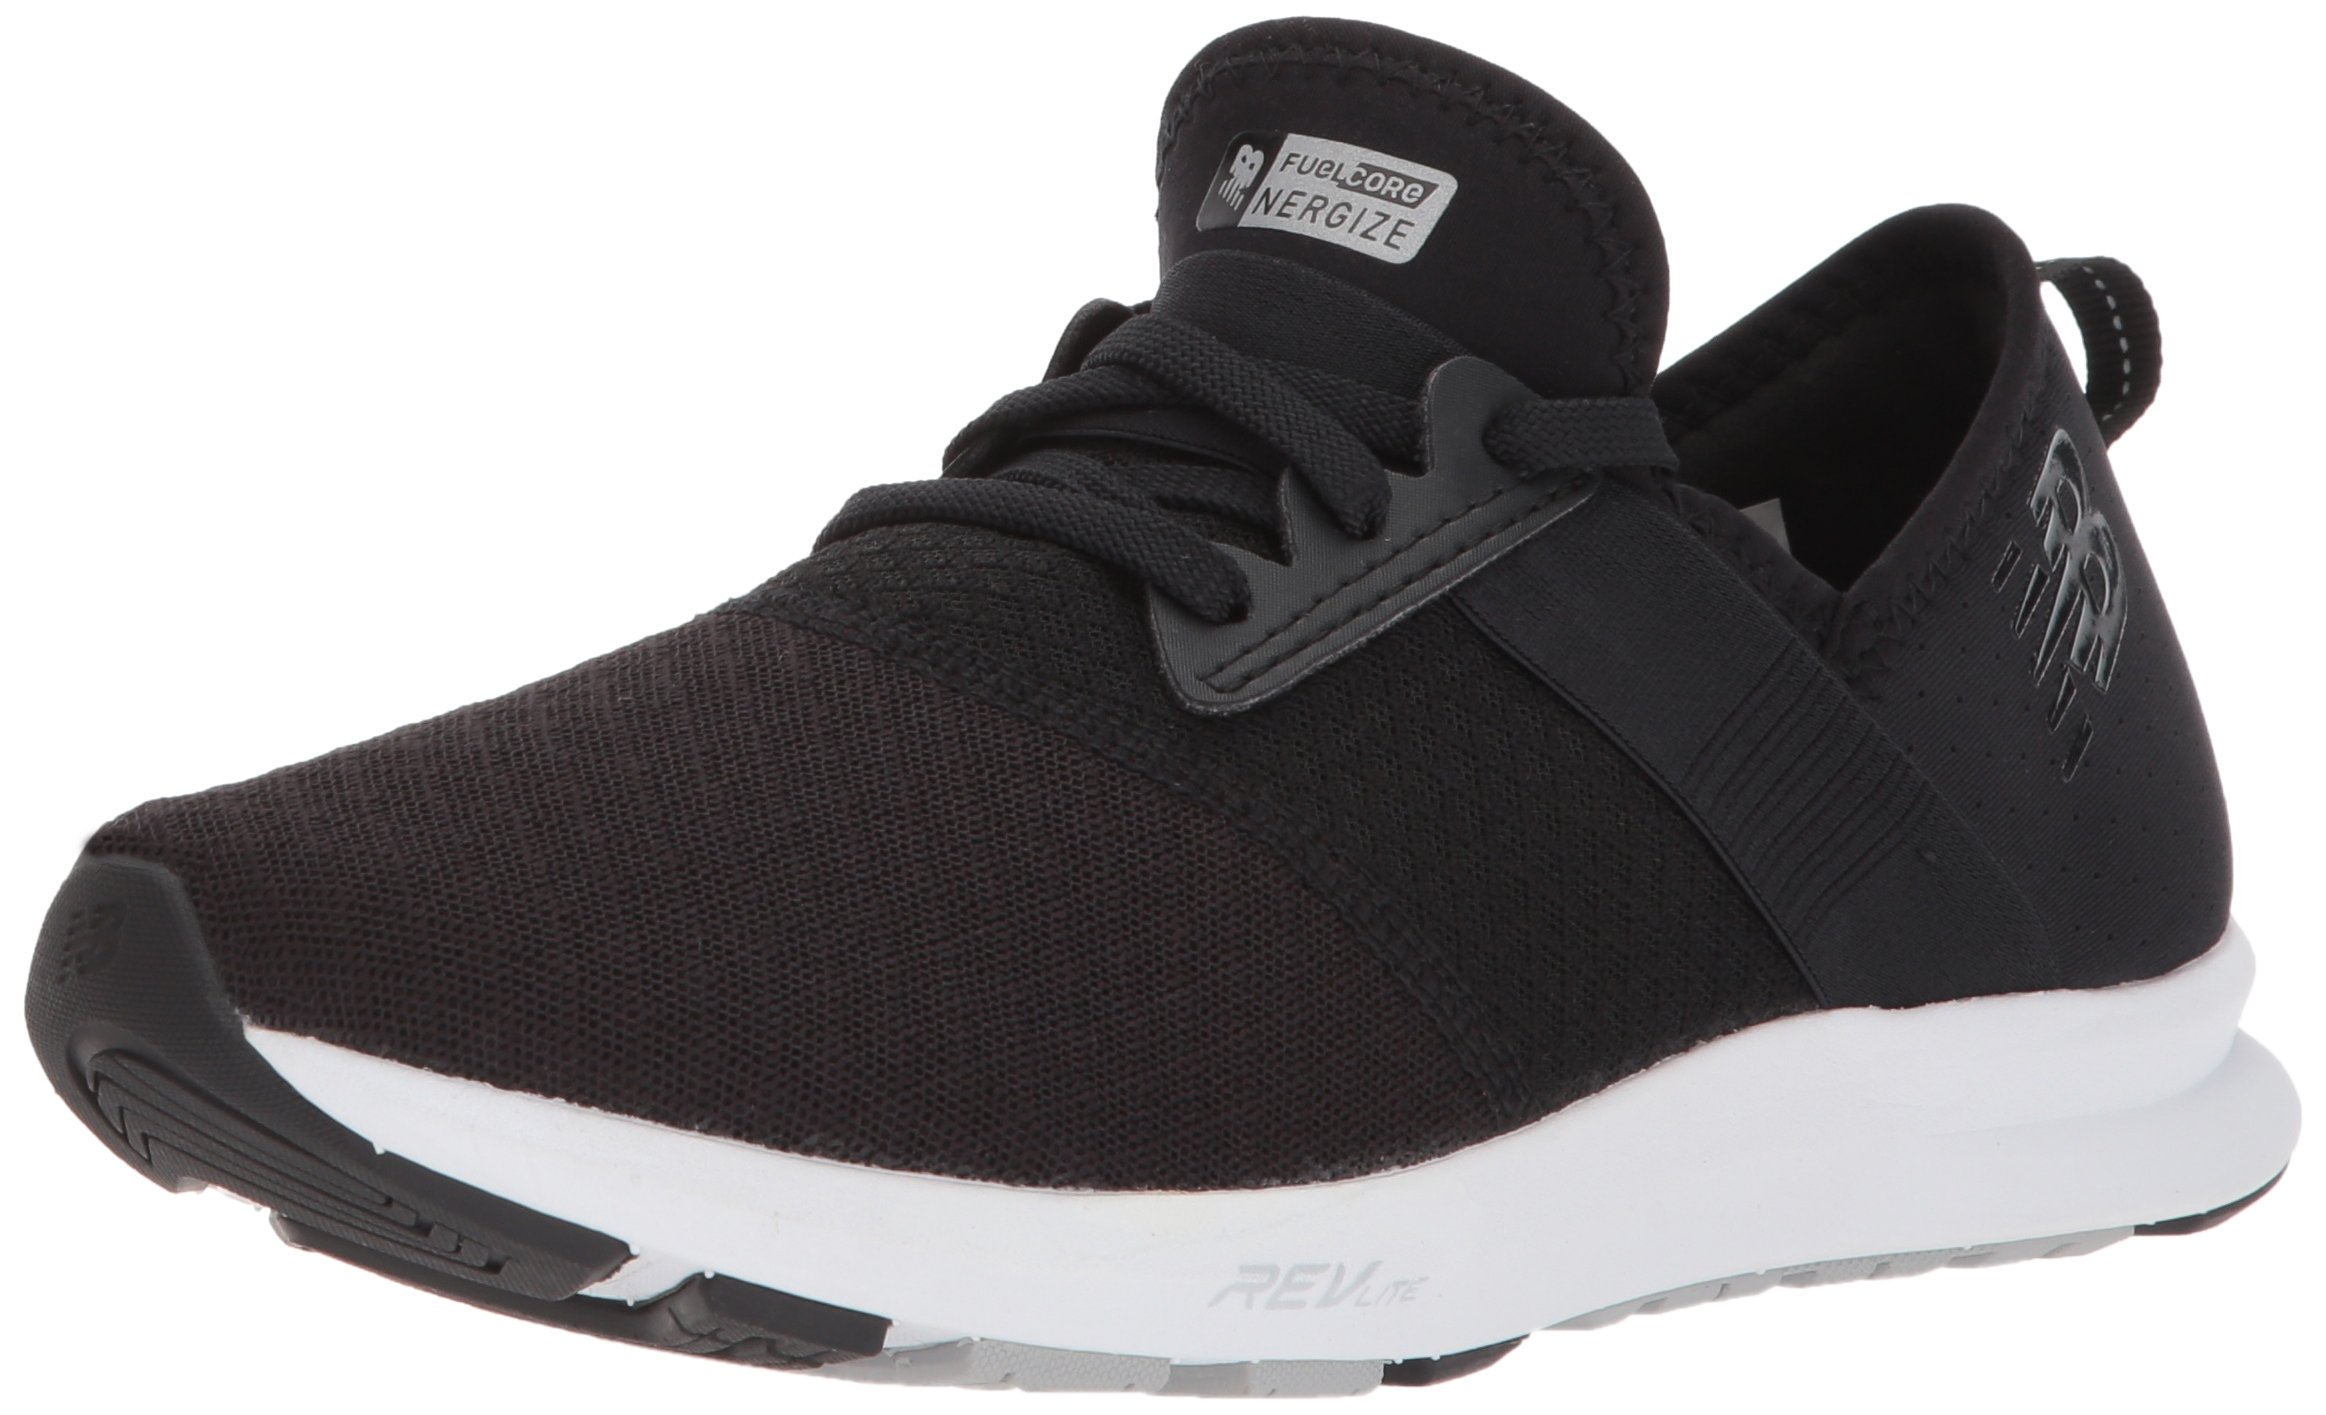 New Balance Women's FuelCore Nergize v1 FuelCore Training Shoe, Black and Grey, 8.5 D US by New Balance (Image #1)